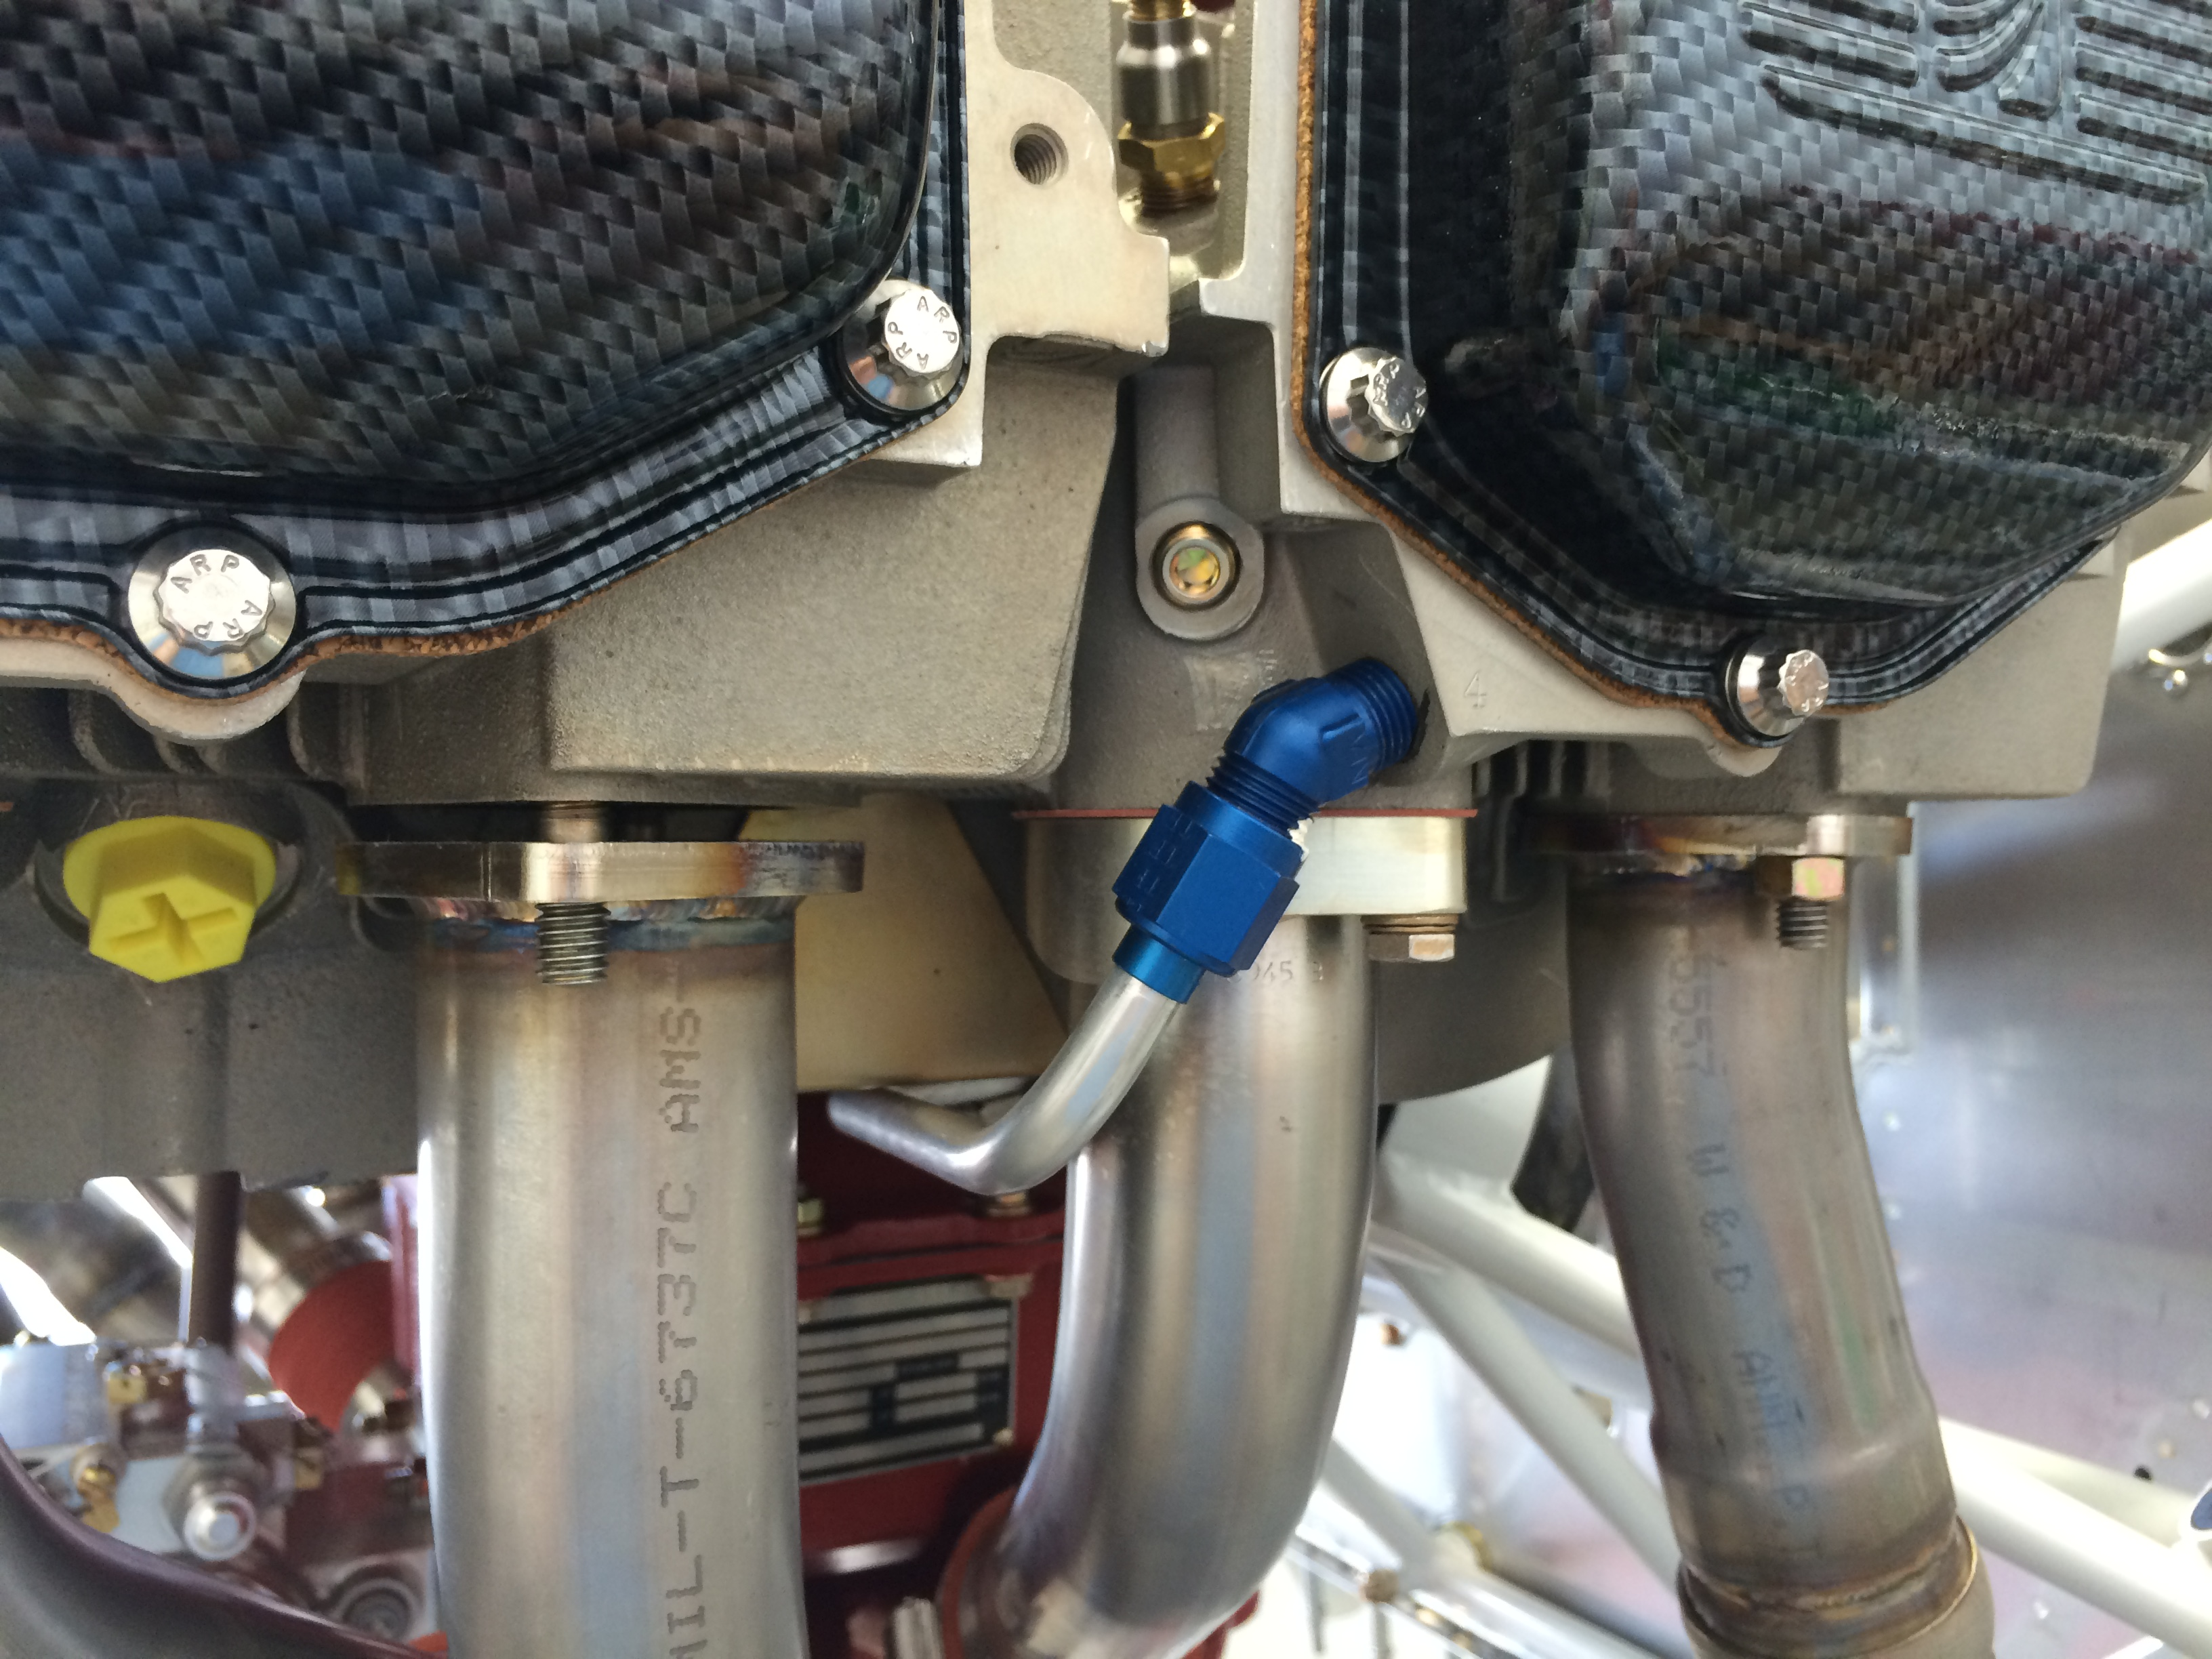 Exhaust gaps